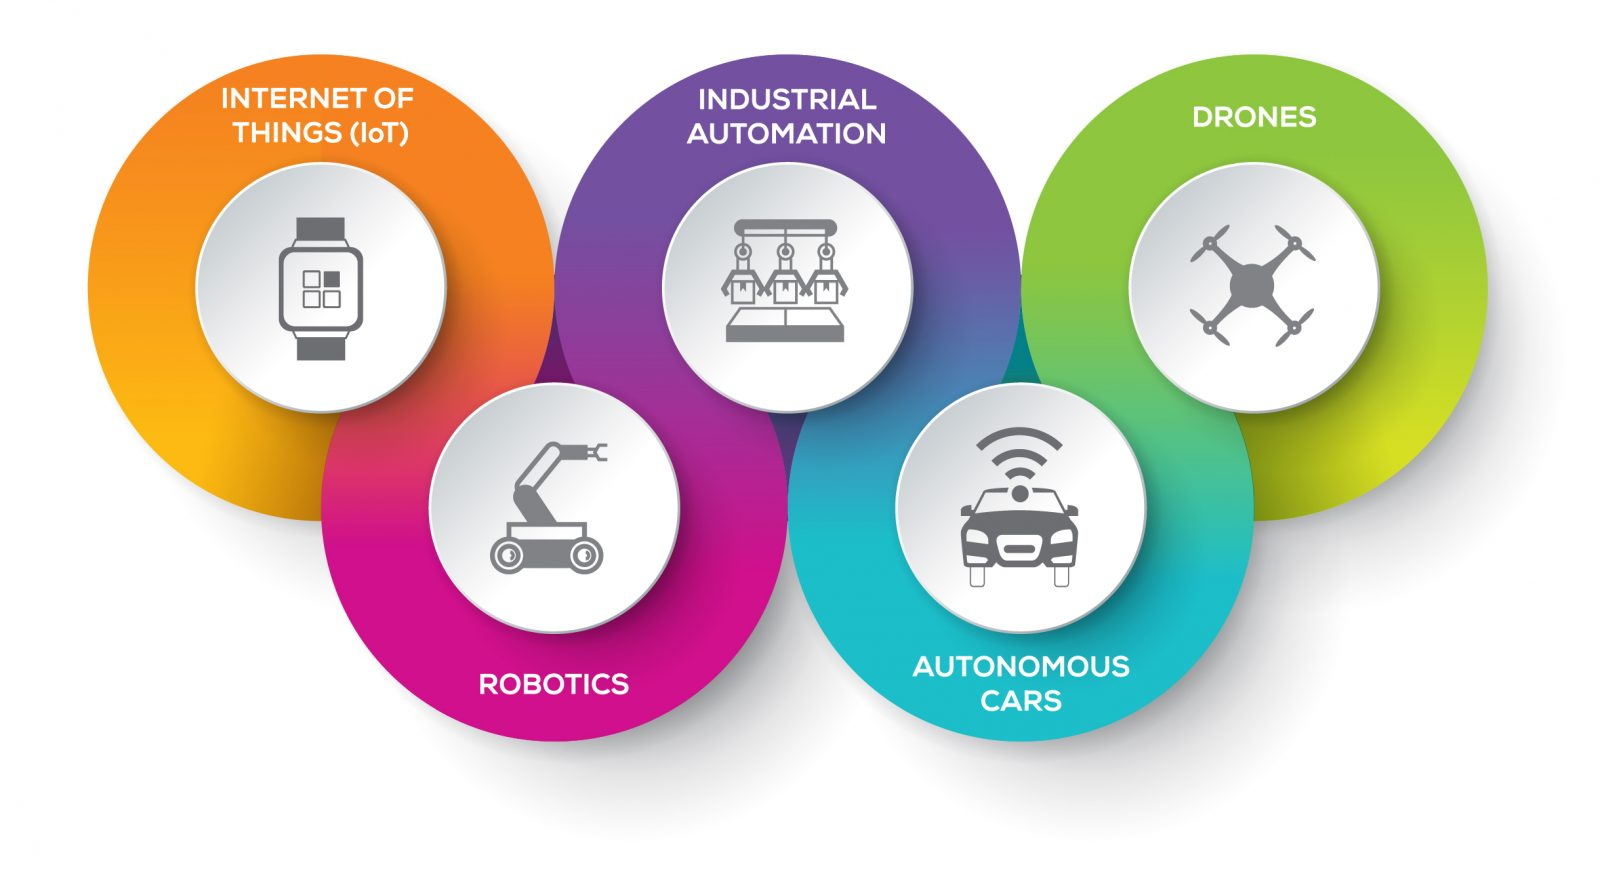 Graphic showing graphics for the Internet of Things (IoT), Industrial Automation, Drones, Robotics and Autonomous Cars